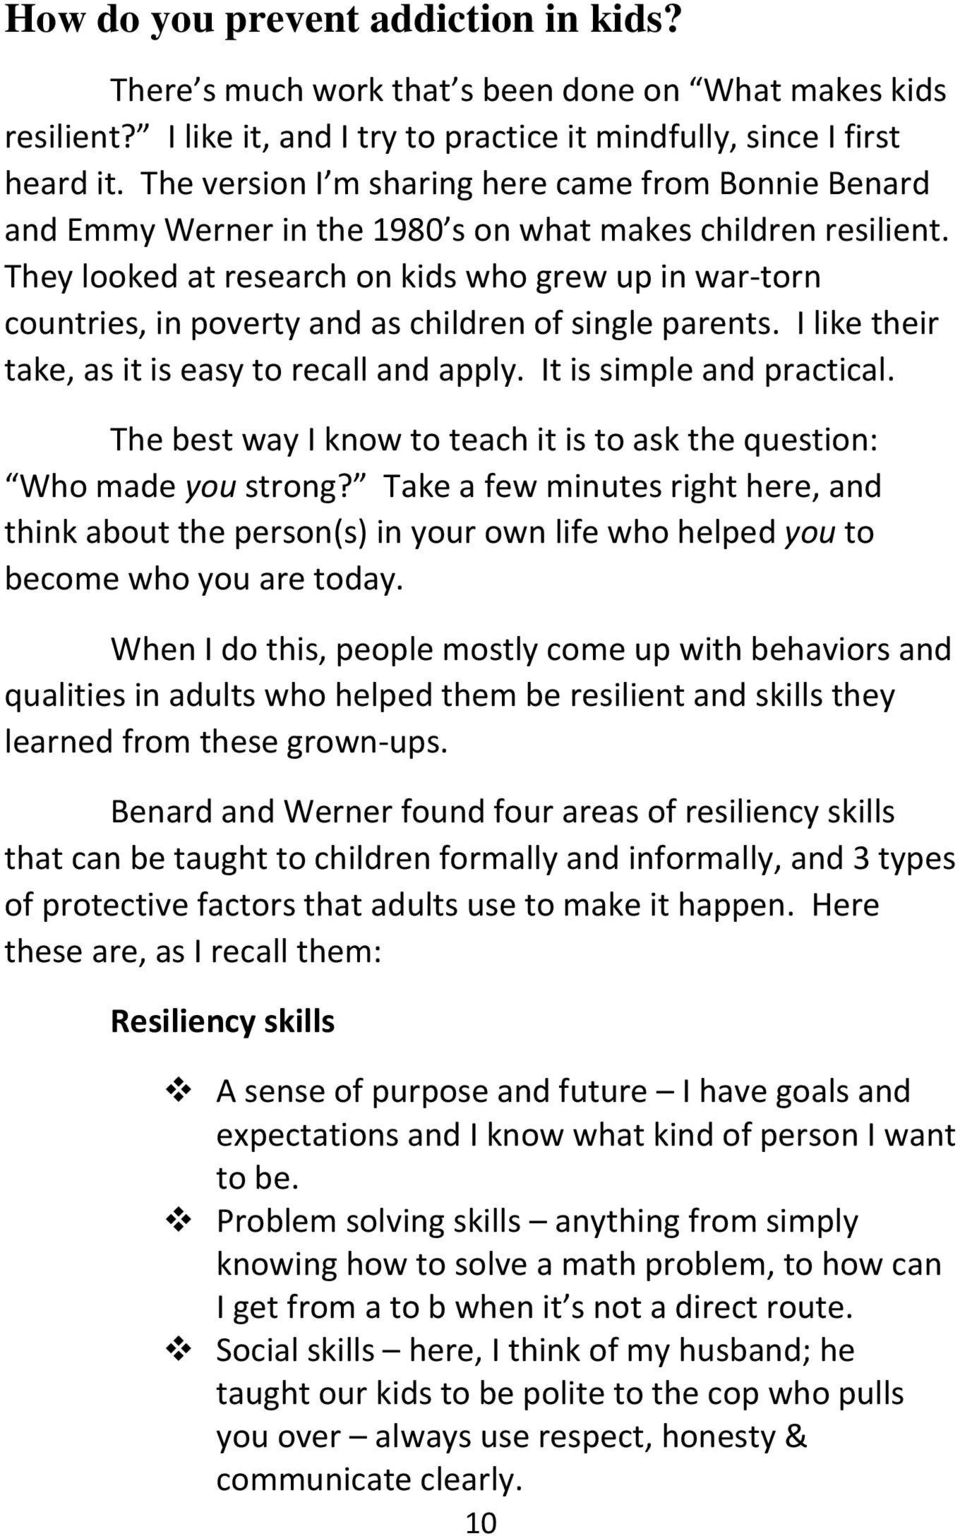 They looked at research on kids who grew up in war-torn countries, in poverty and as children of single parents. I like their take, as it is easy to recall and apply. It is simple and practical.